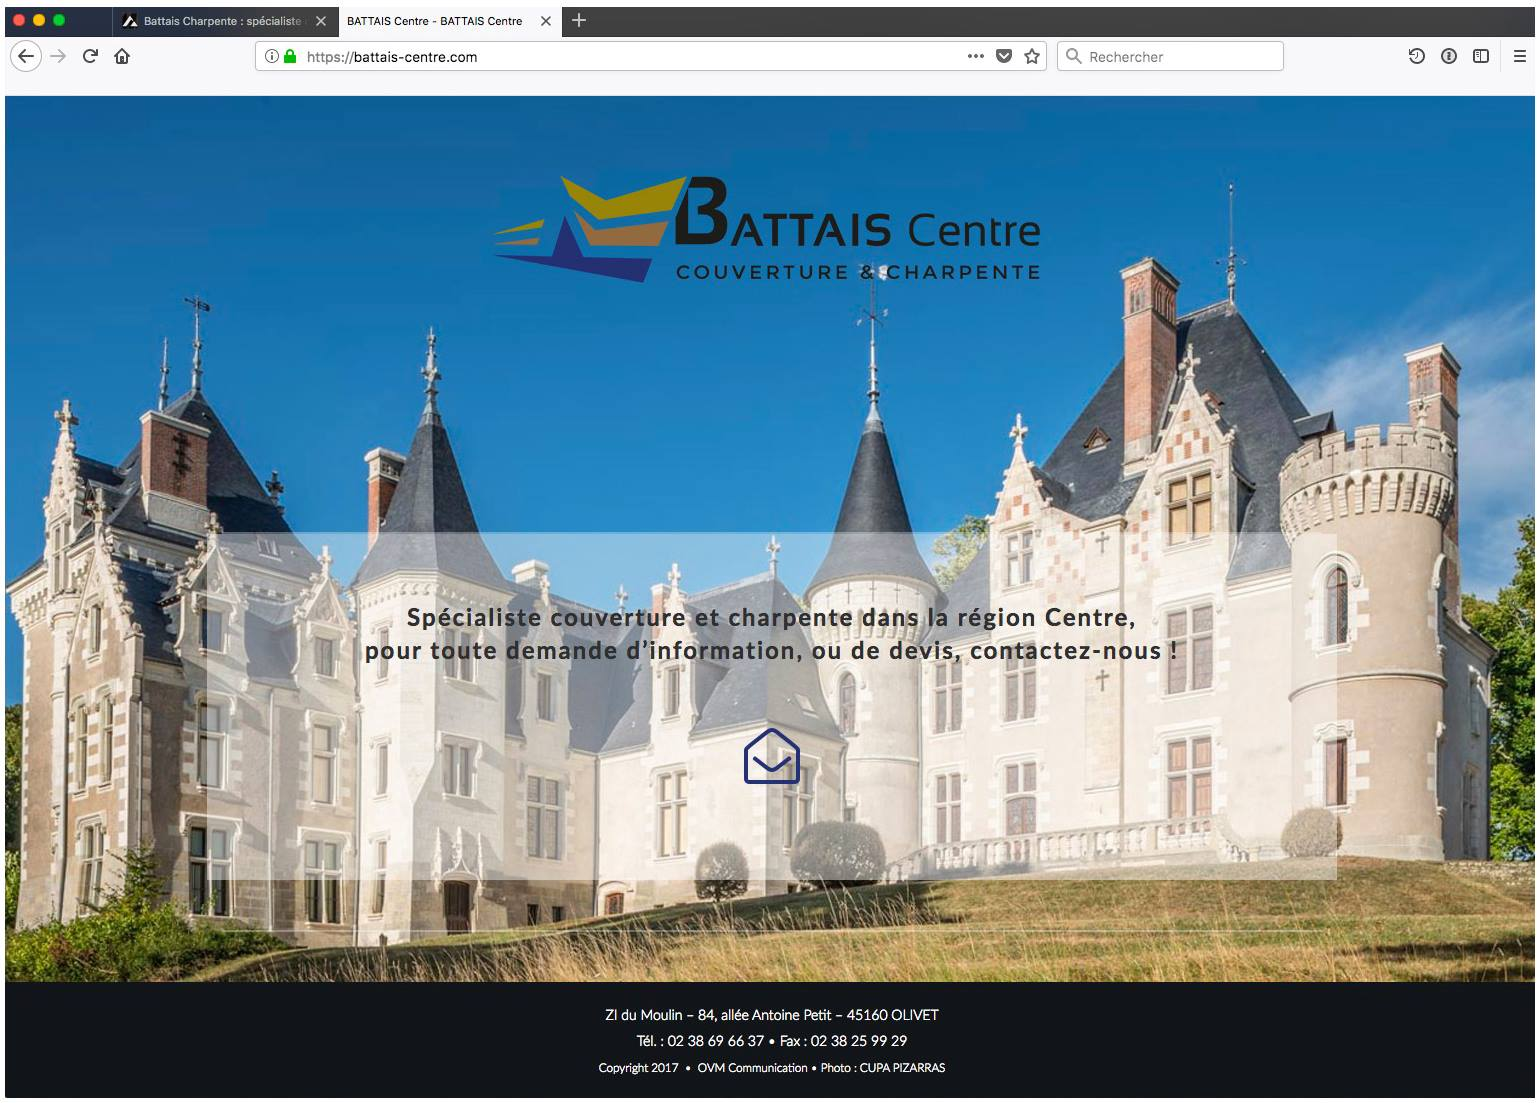 battais centre